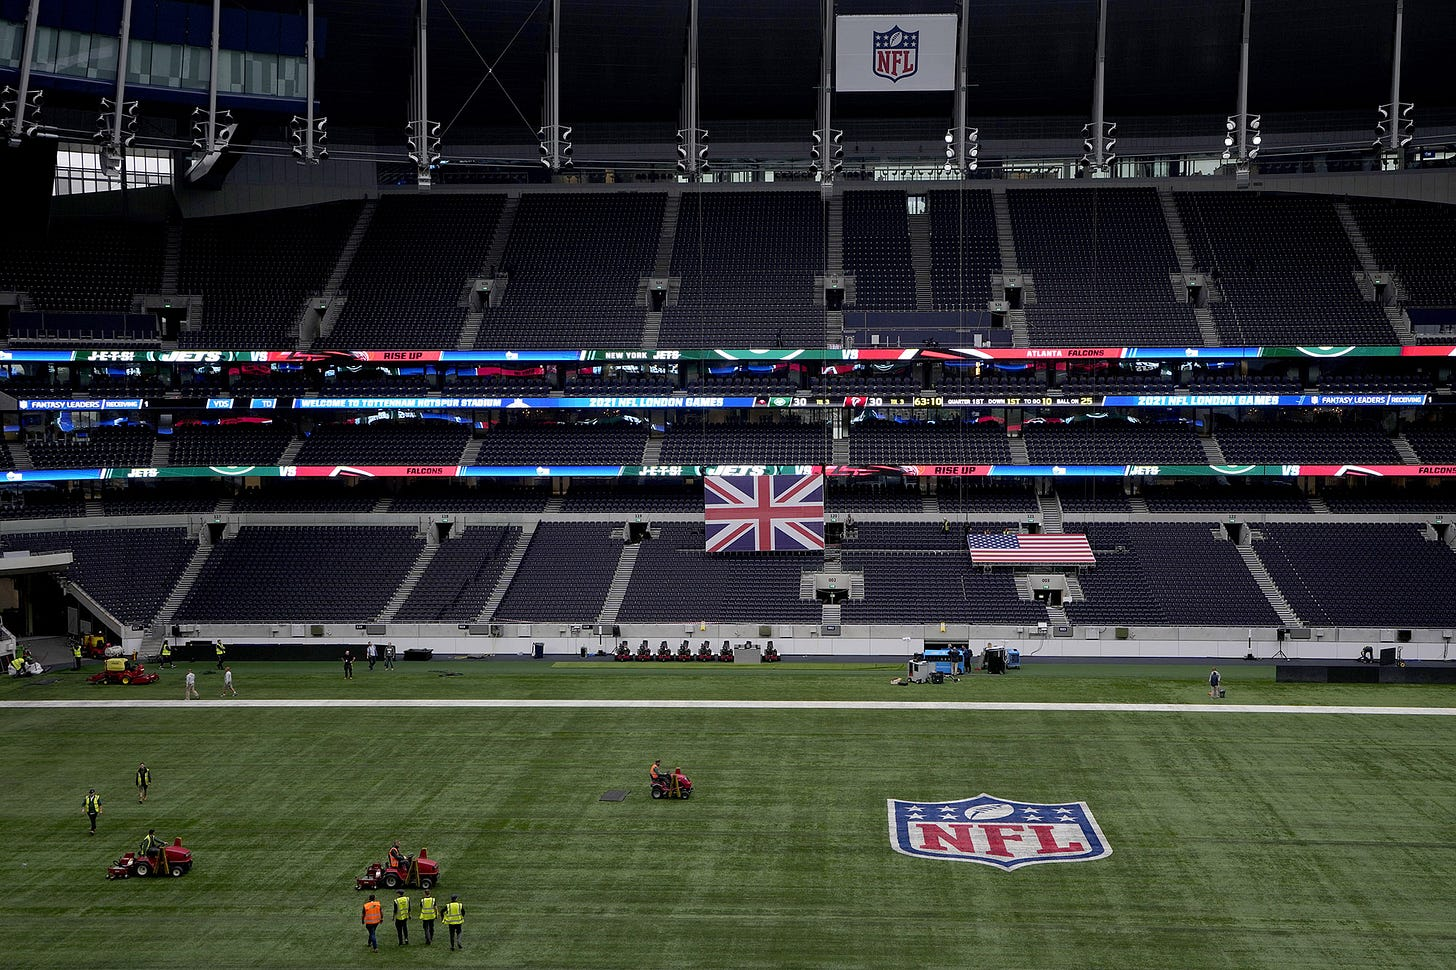 NFL back in London, league on verge of more international games